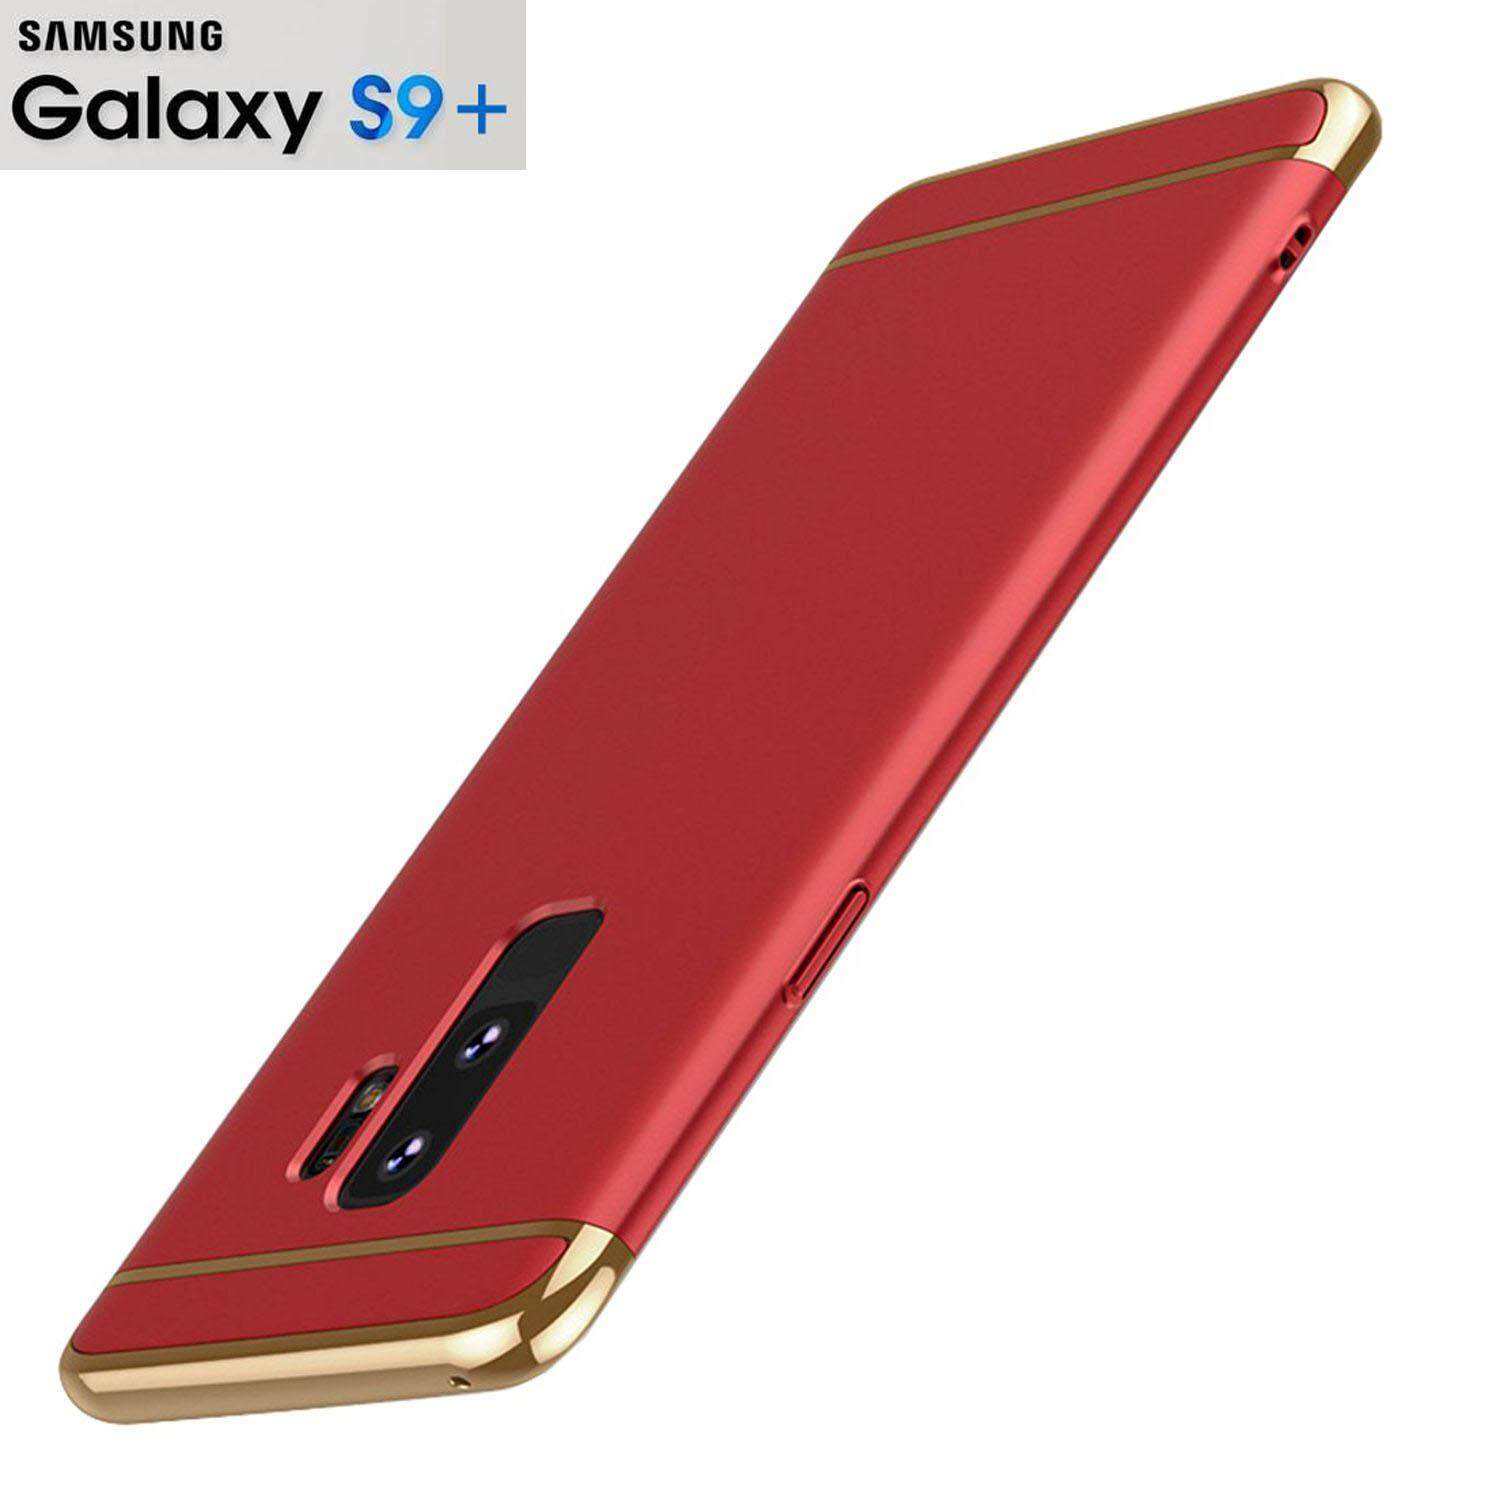 Fashion Shockproof Thin Hard Case Cover for Samsung Galaxy S9 Plus(S9+)